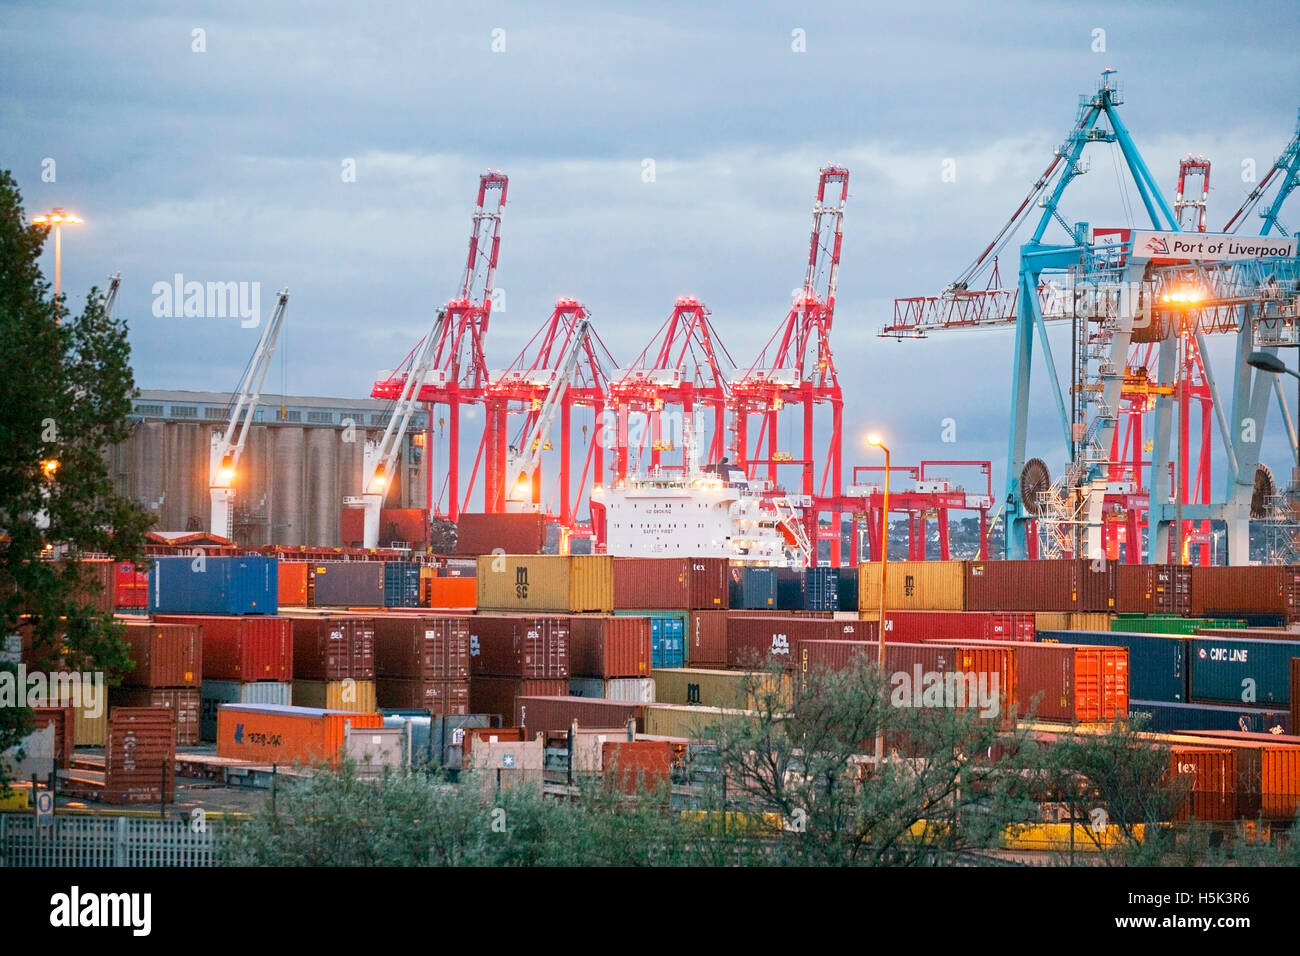 British exports and imports being unloaded and loaded at Seaforth Docks, Container port,  Liverpool2, Merseyside, - Stock Image